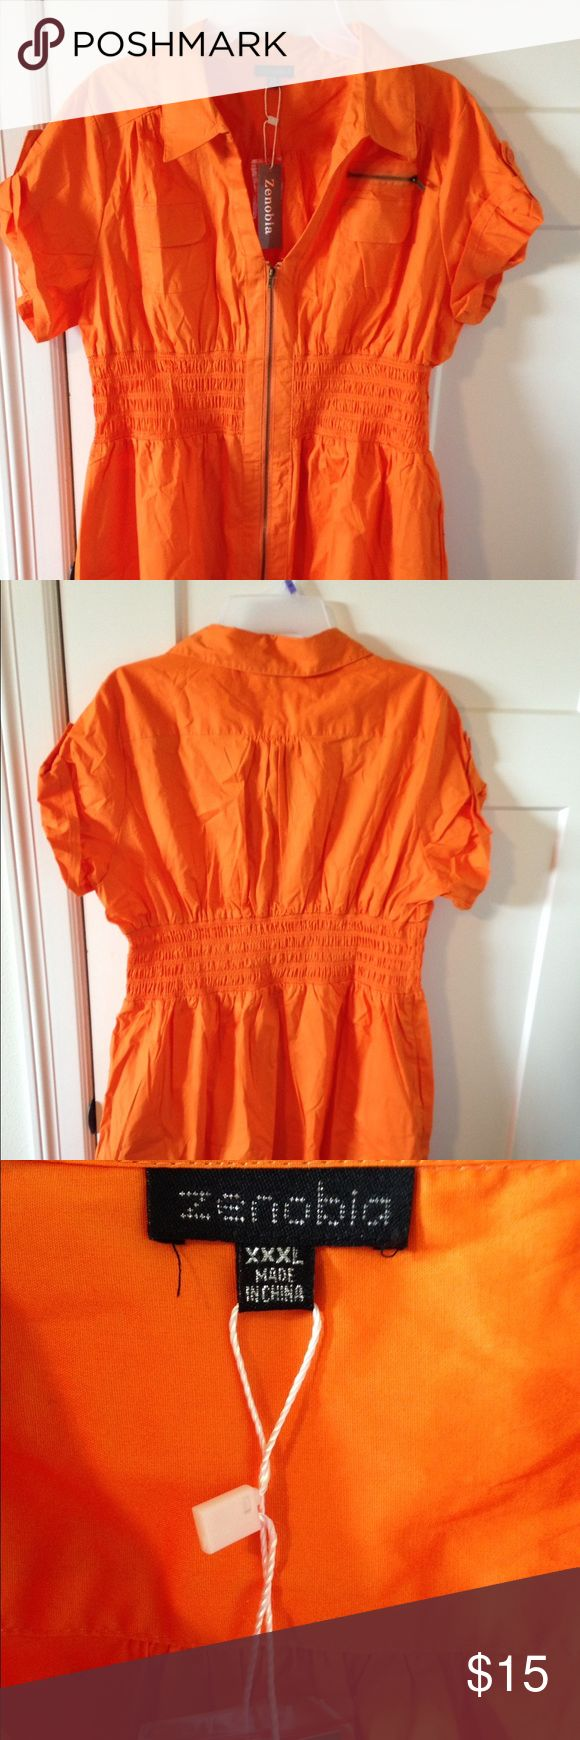 Orange zip up blouse Very cute orange zip up blouse! Cute little pockets and cap sleeves! Fits more like a 2x. New with tags! Zenobia Tops Blouses